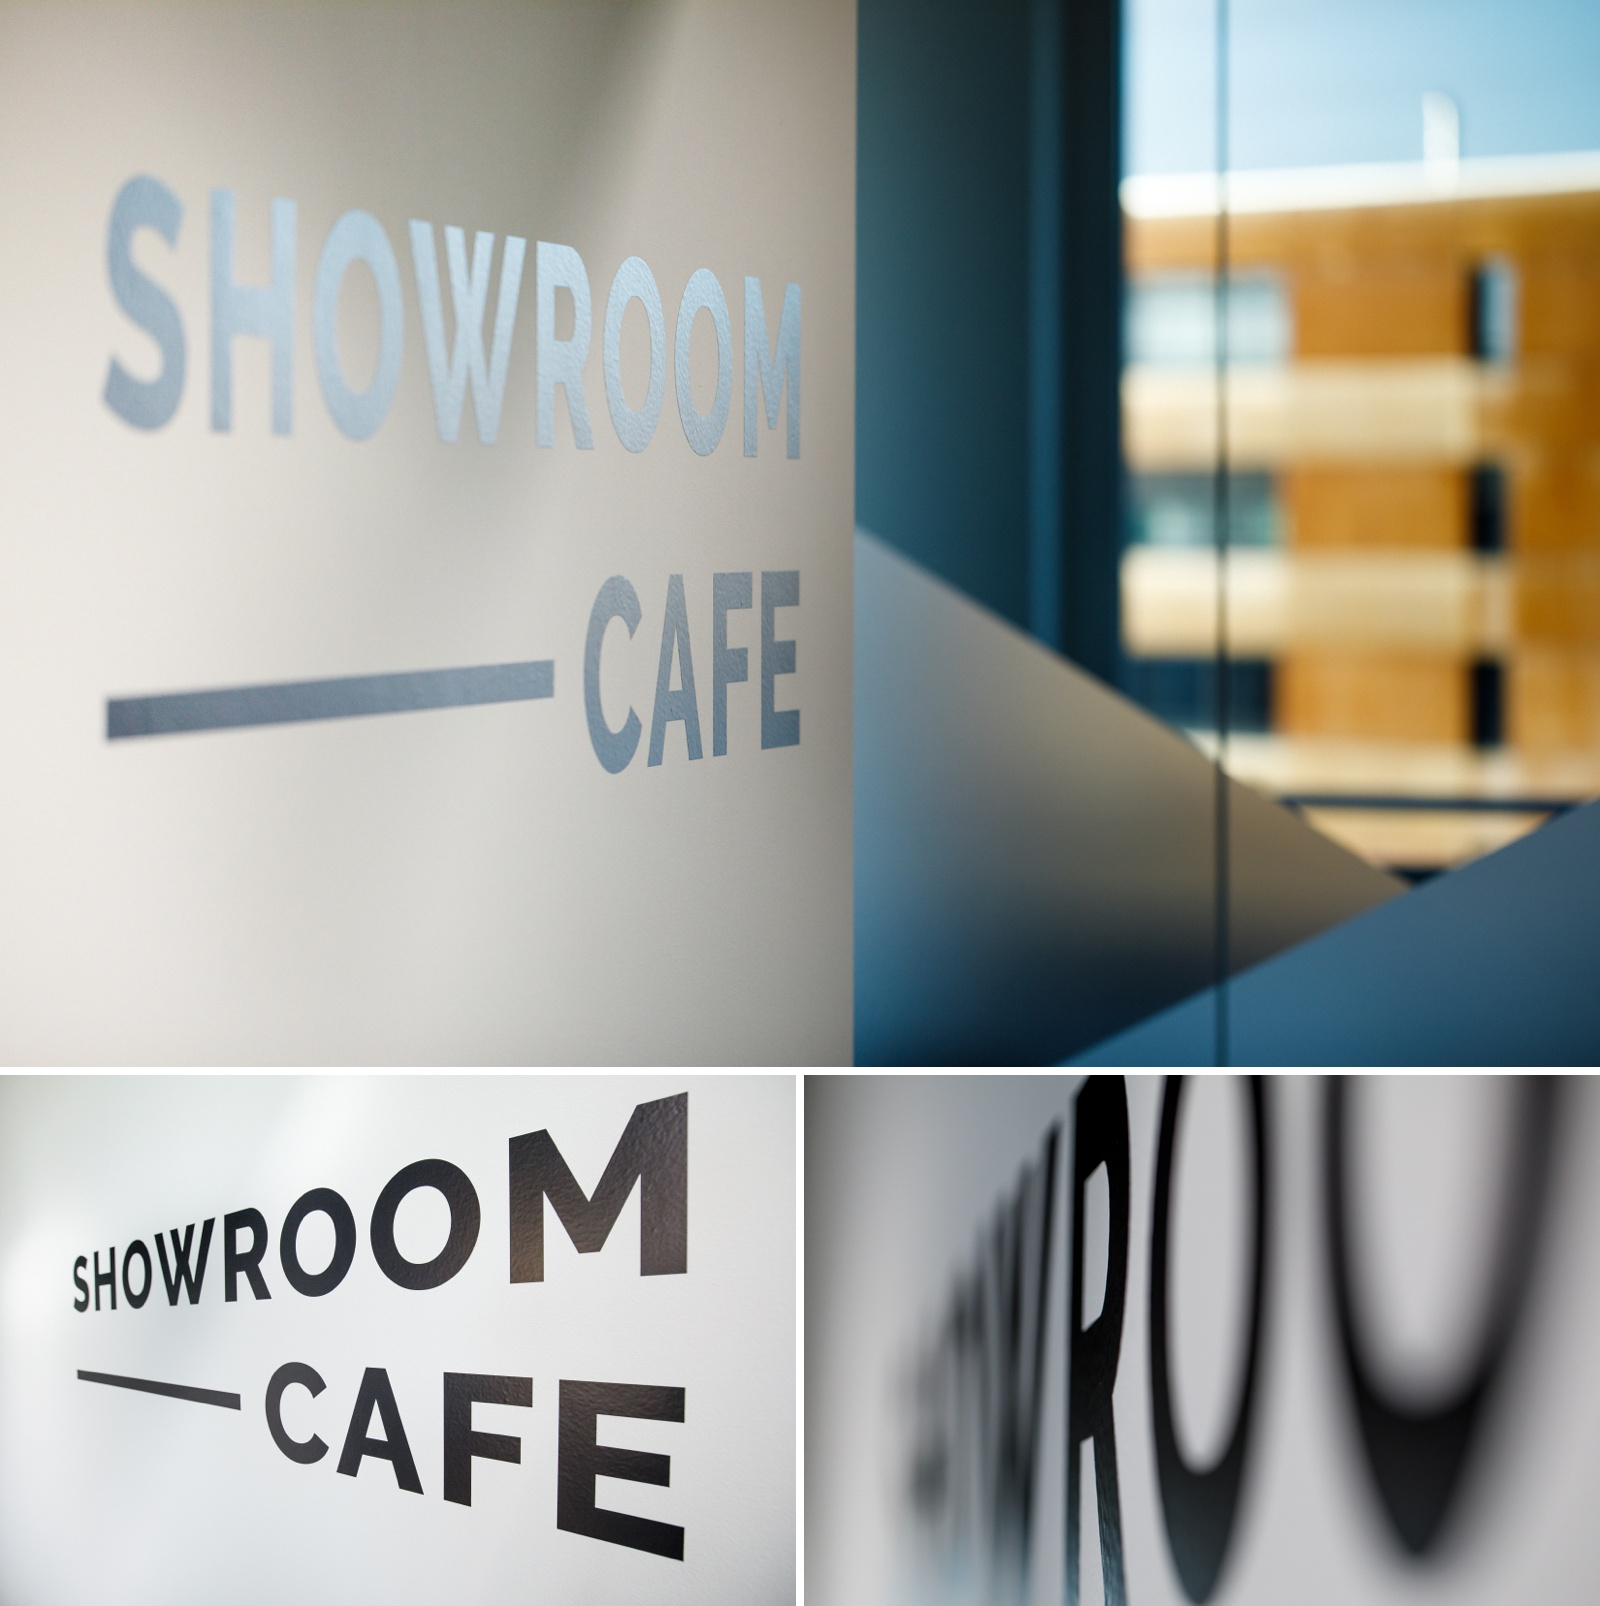 The showroom cafe picture at NCR in Zurich